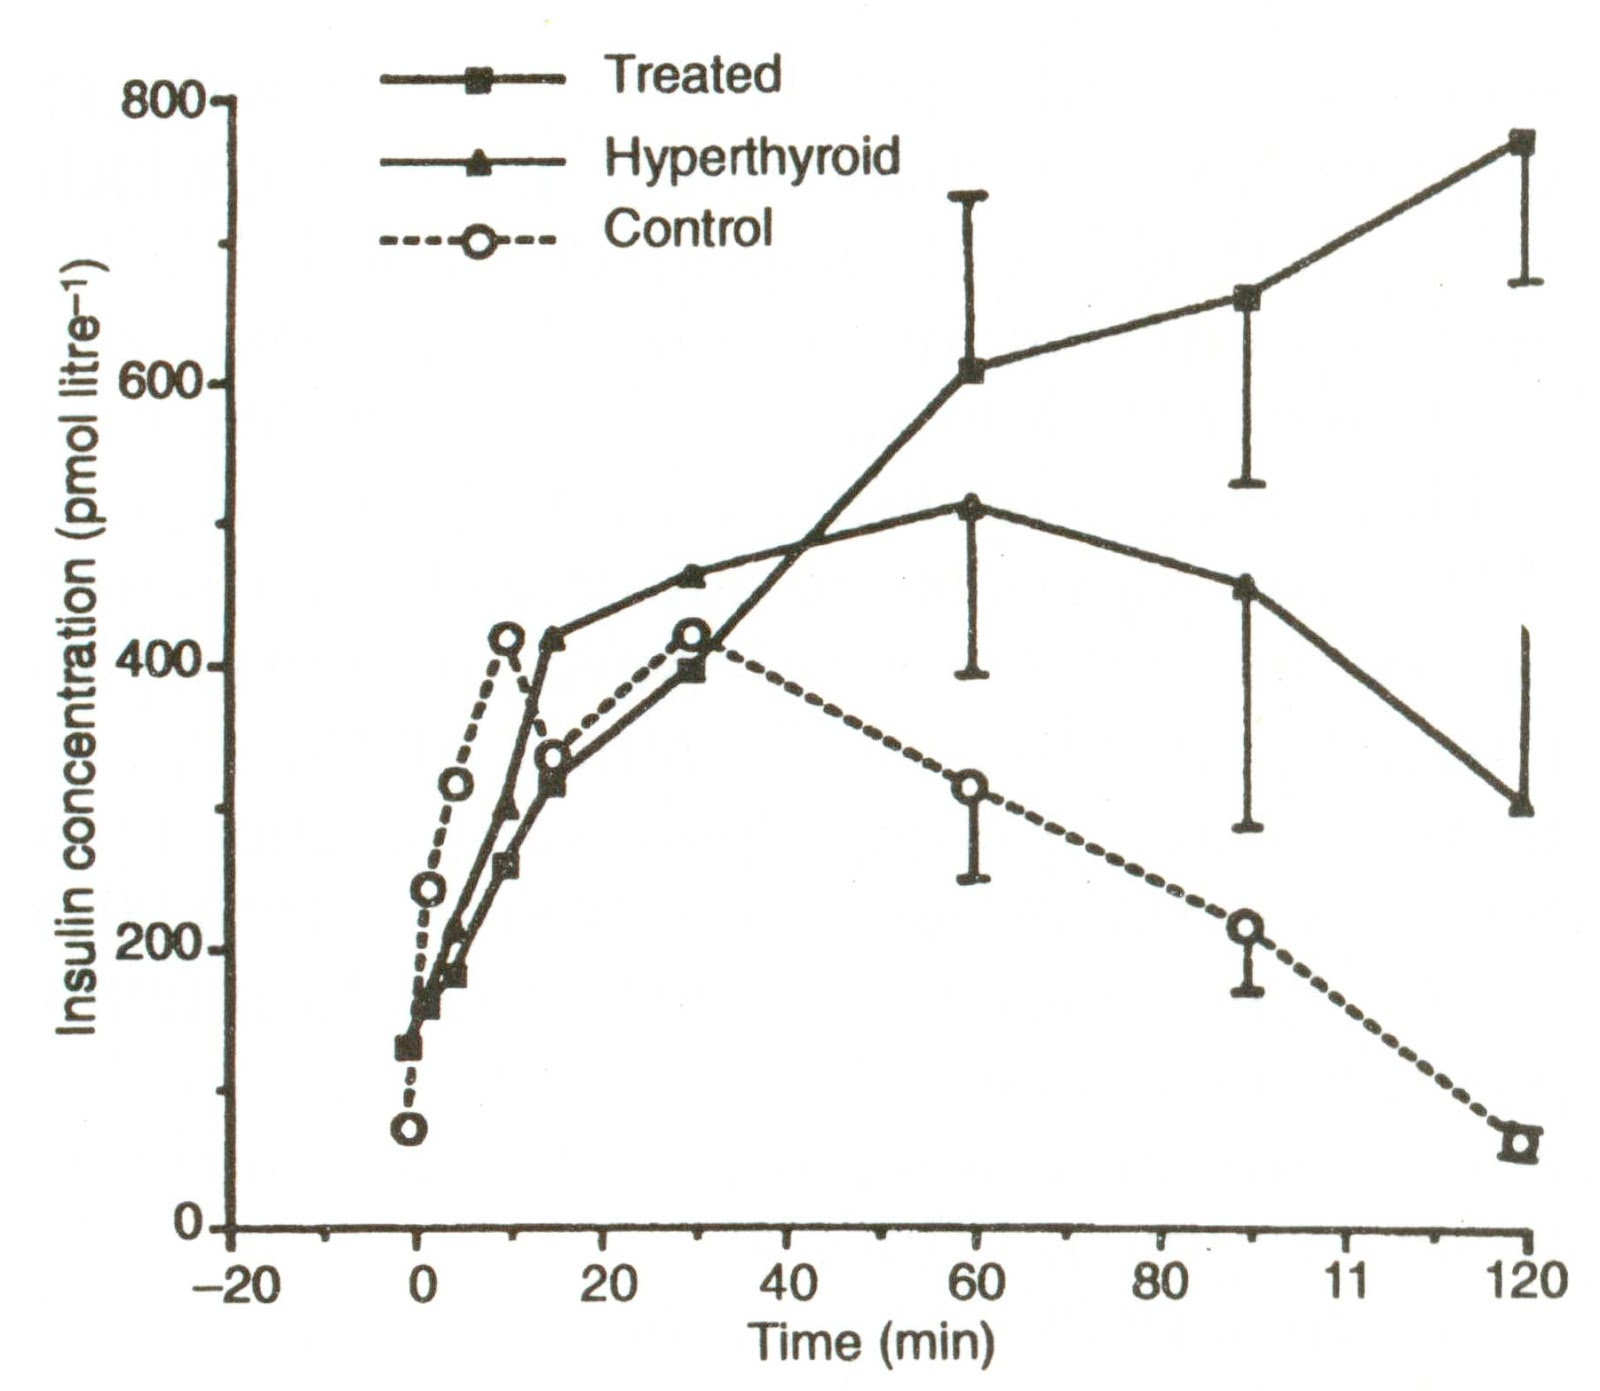 hight resolution of serum insulin concentrations in response to intravenous glucose tolerance test in 11 healthy cats 15 cats with untreated hyperthyroidism